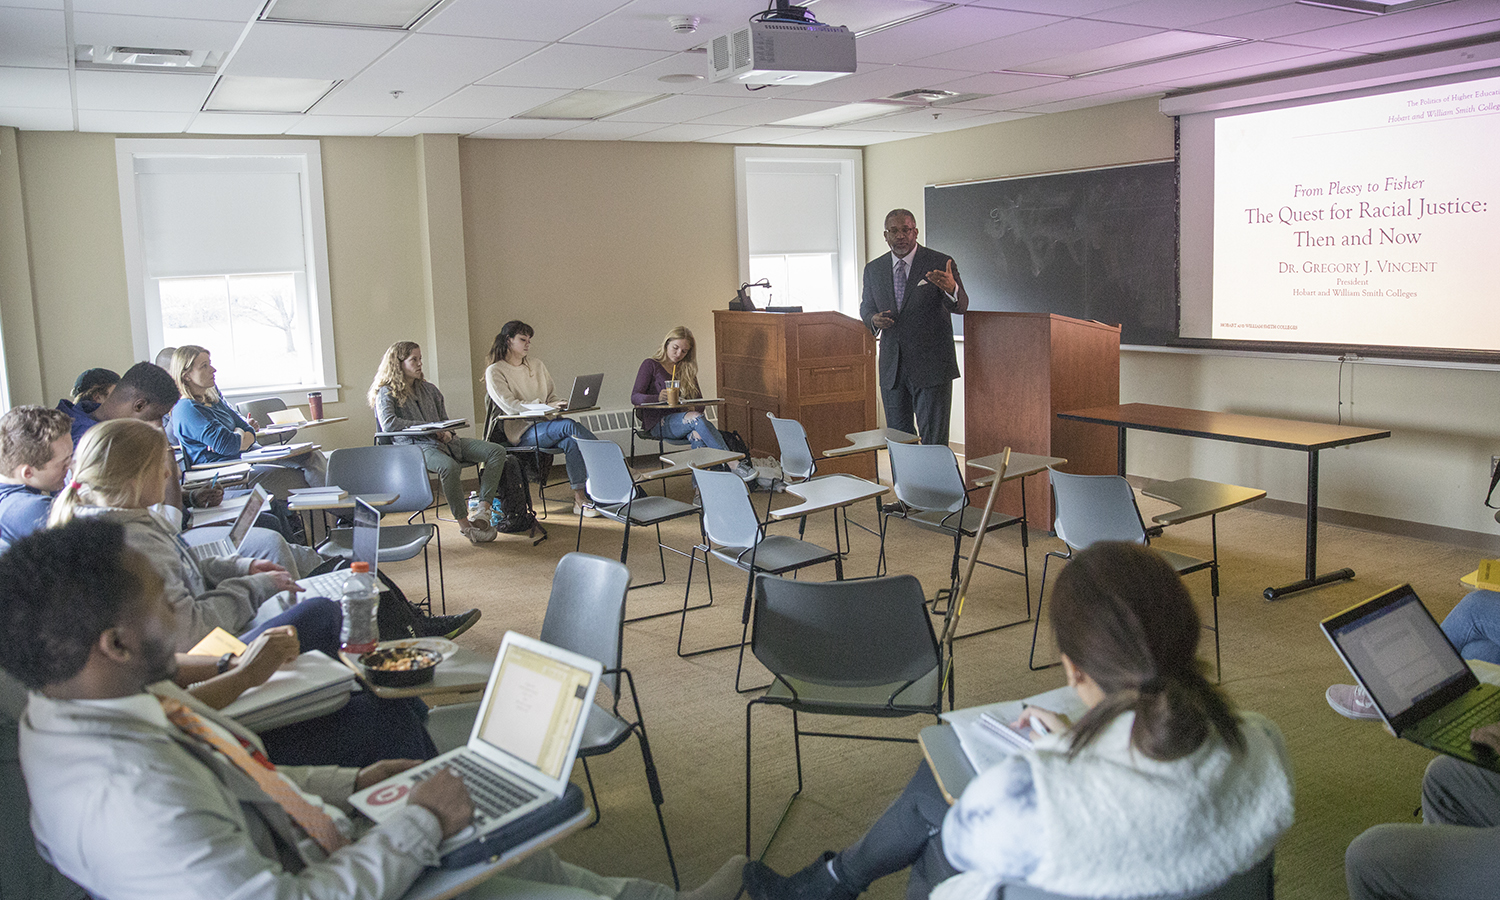 """President Gregory J. Vincent '83 delivers his talk, """"From Plessy to Fisher. The Quest for Social Justice: Then and Now"""" to students in """"Politics in Higher Education"""" with Assistant Professor of Political Science Justin Rose in Stern Hall."""